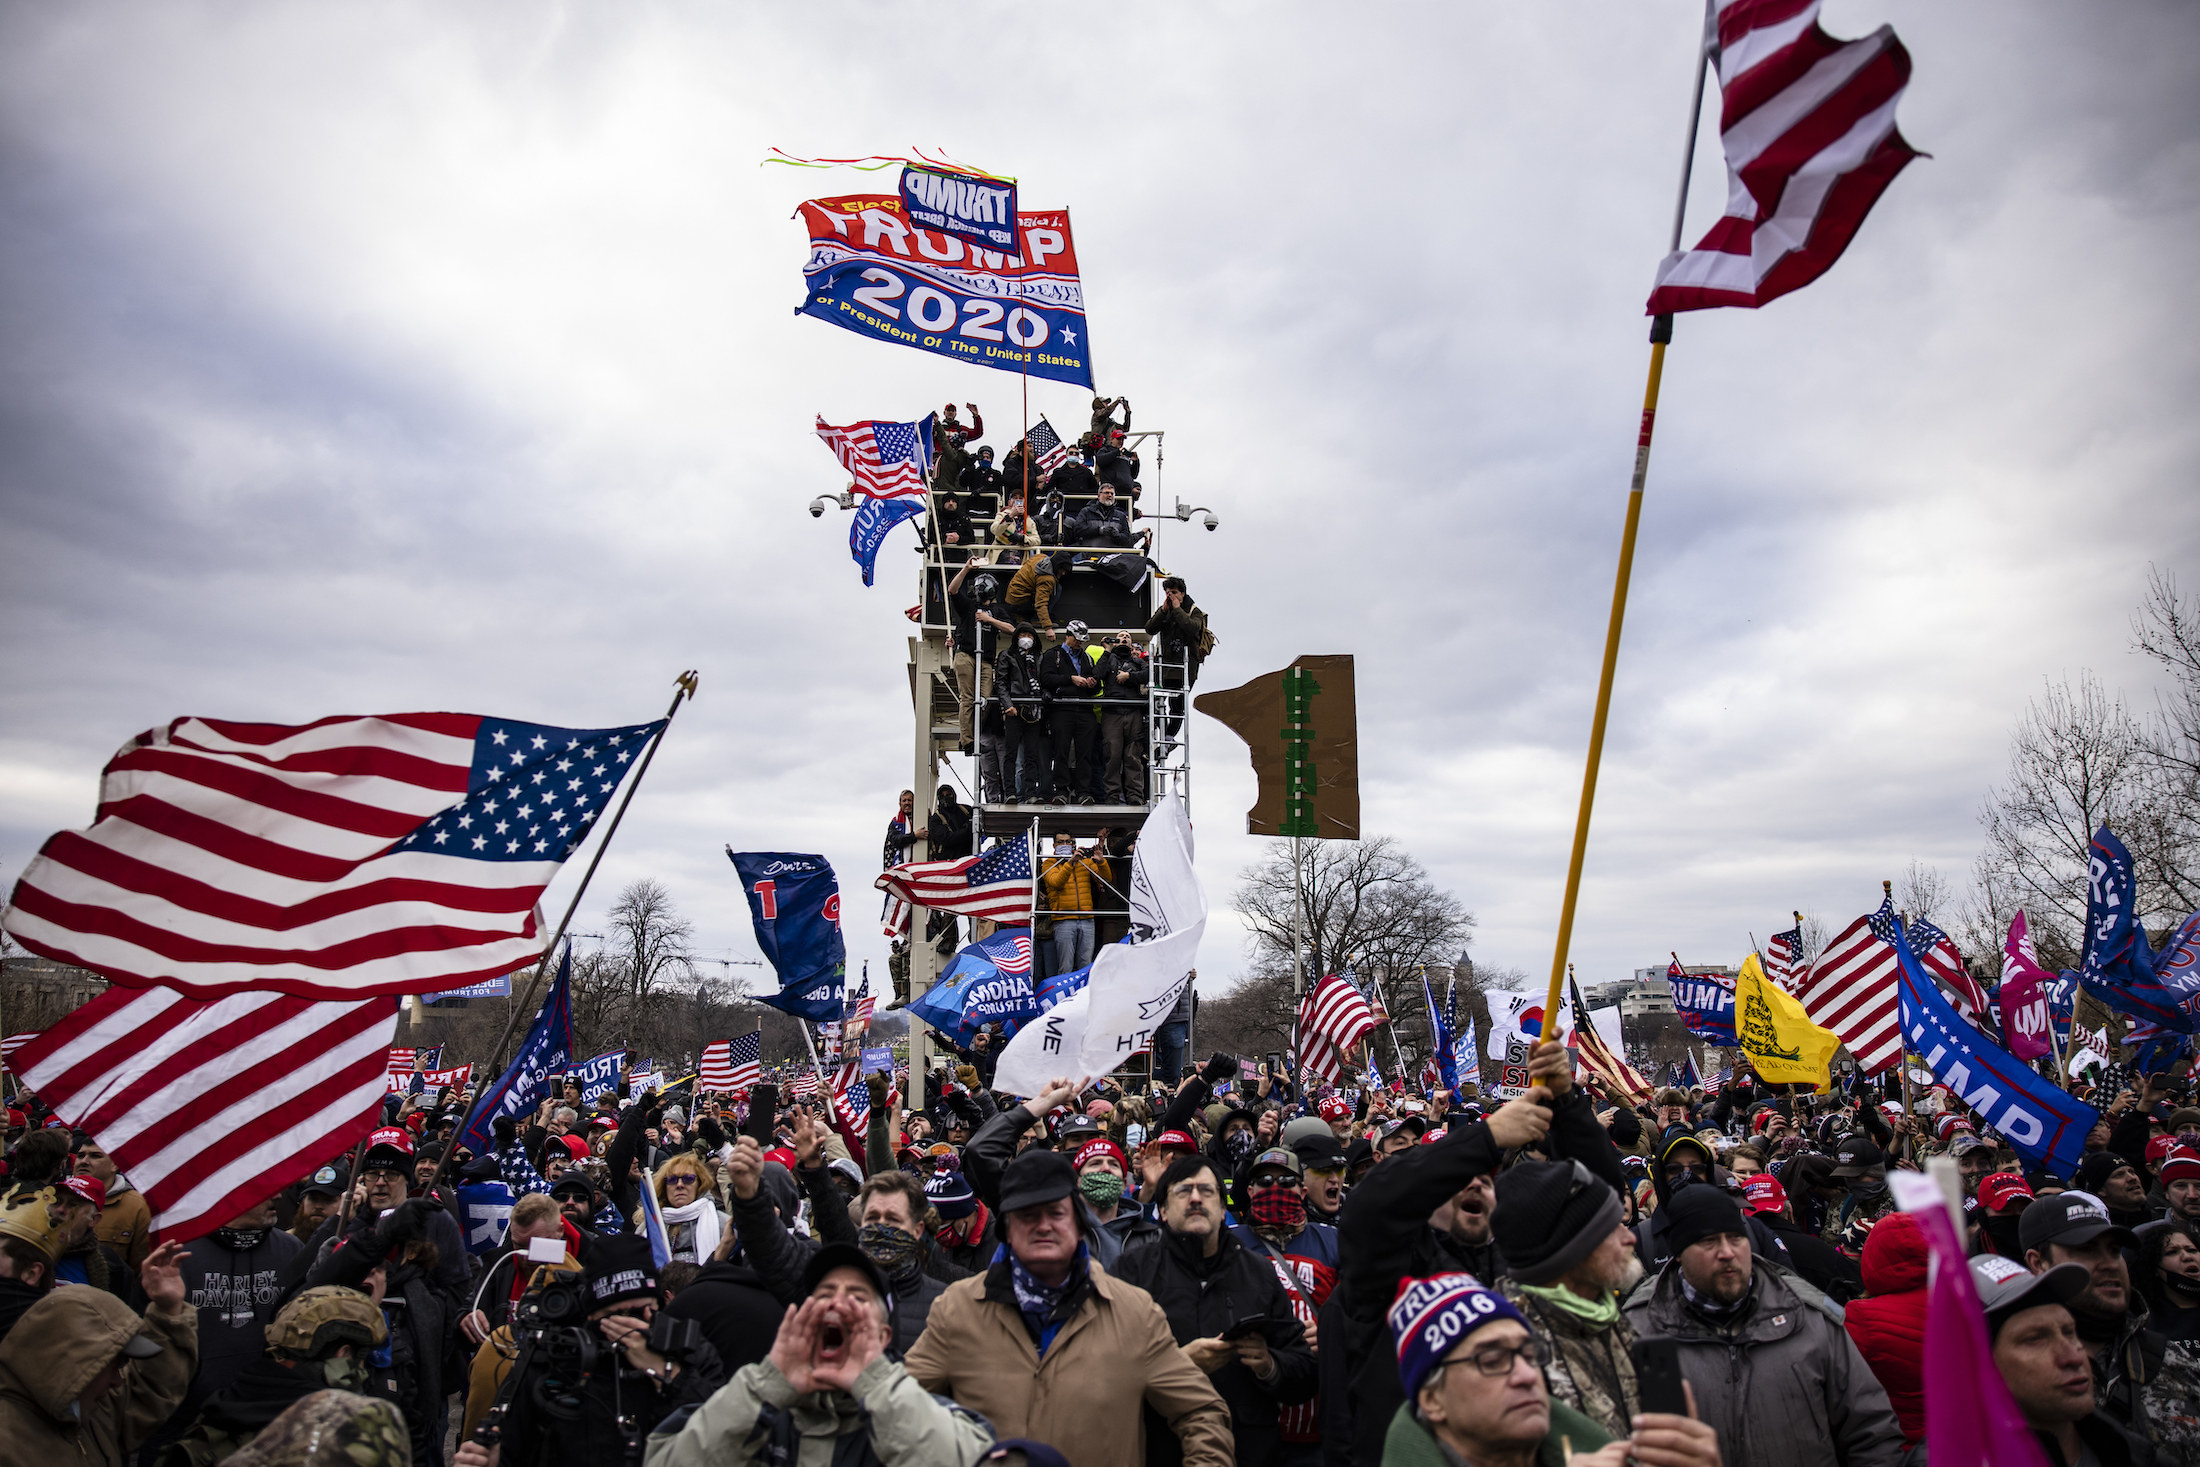 Pro-Trump supporters stand on a piece of scaffolding and wave Trump flags